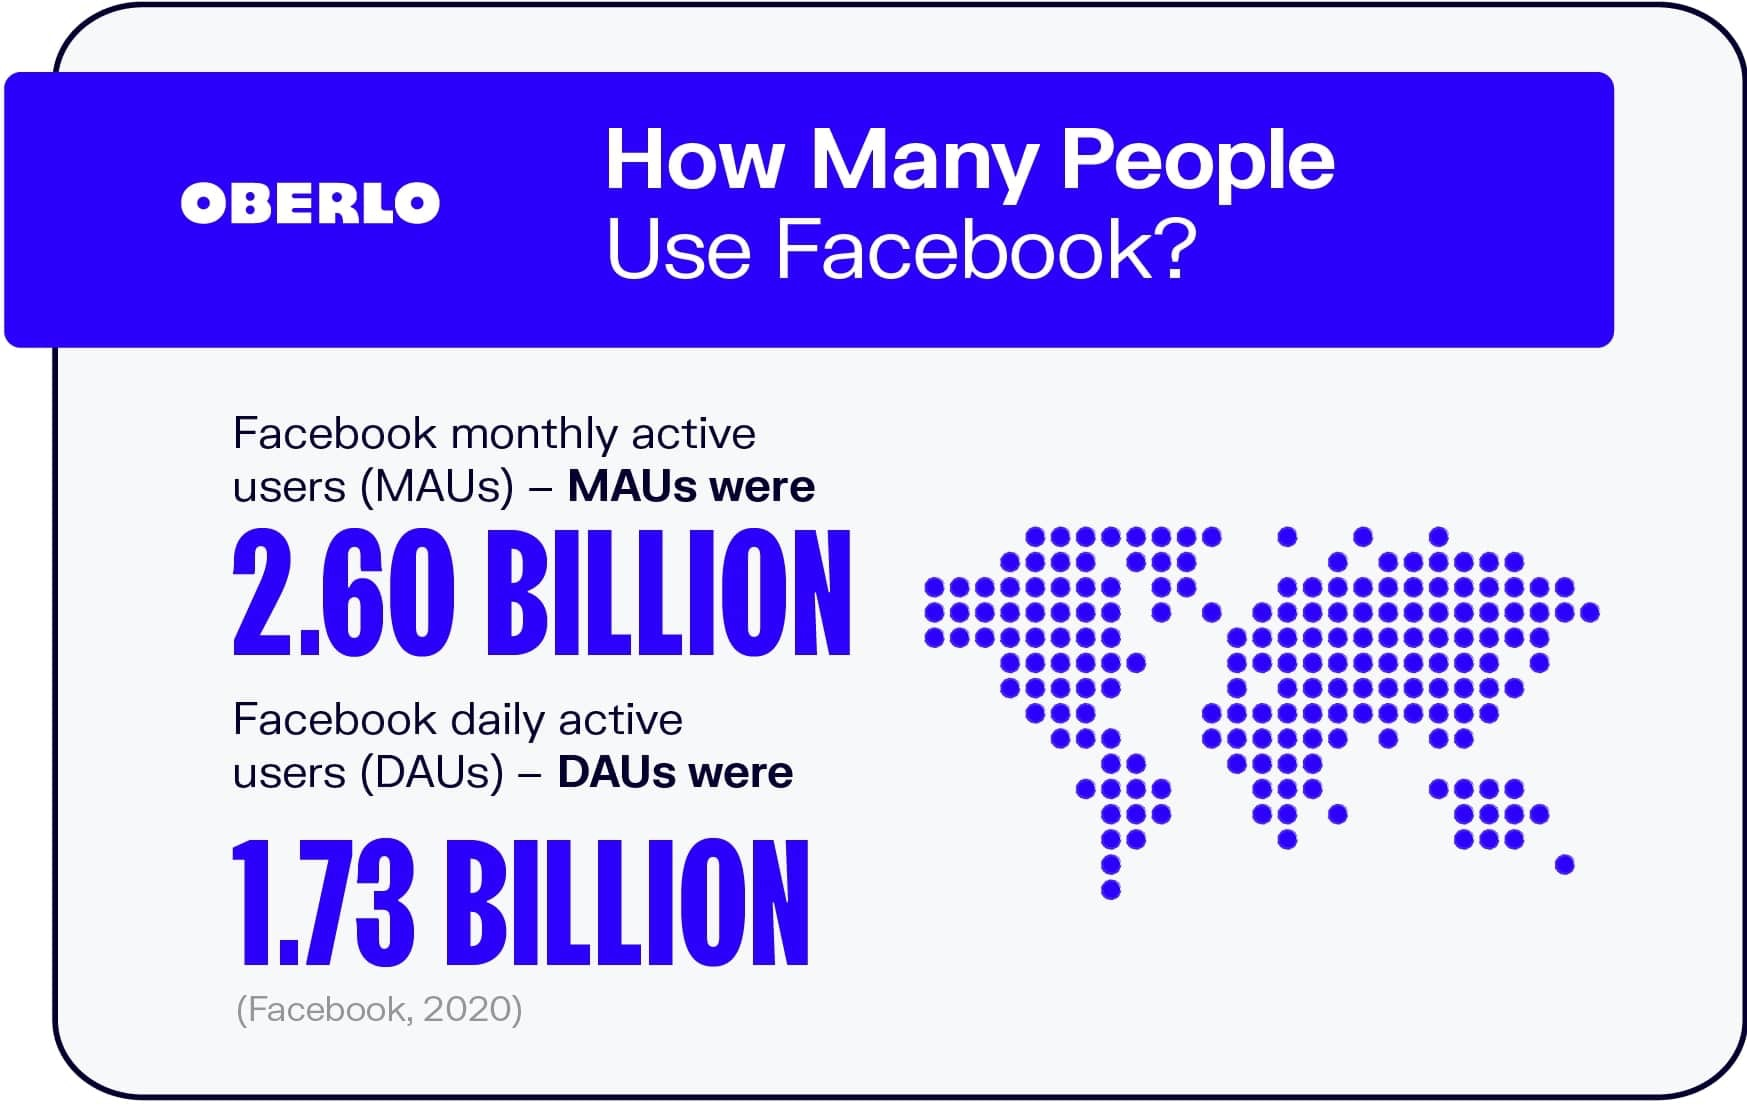 How Many People Use Facebook?